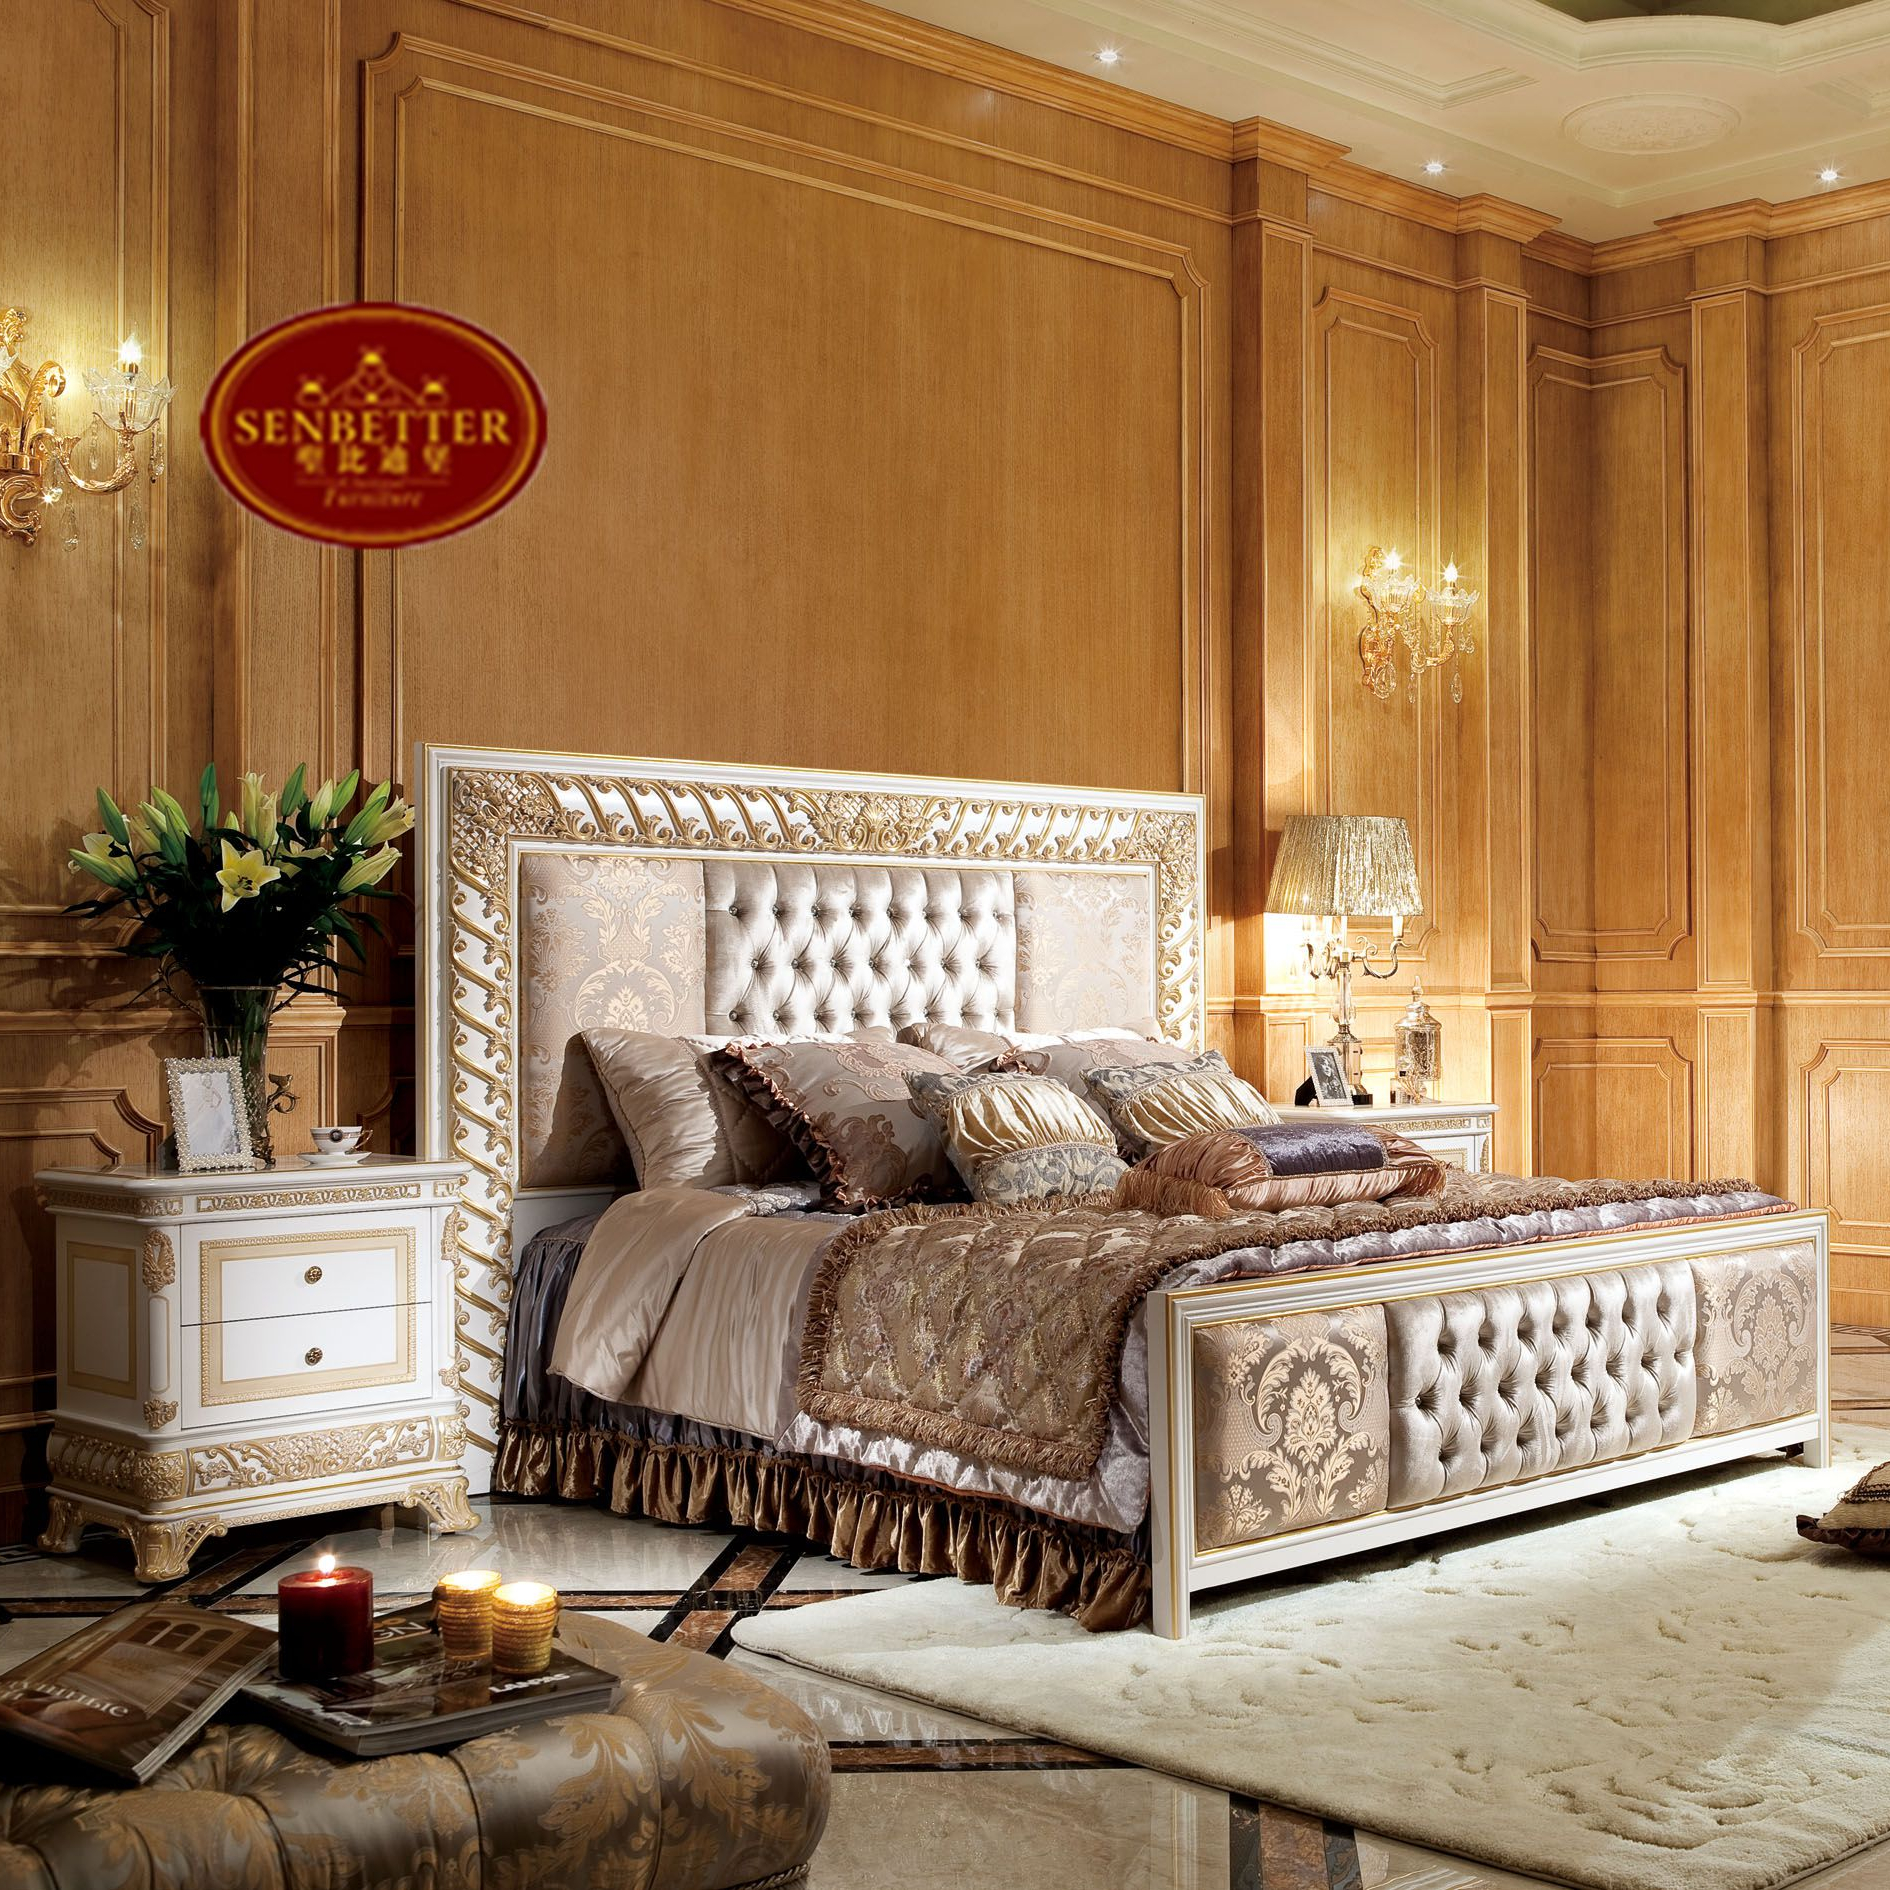 0062w-2 White Gold Decor Bedroom Sets Furniture,Luxury Wooden King Size Bed  - Buy Bed Decor,Bedroom Sets Luxury King Size,Wooden Bed Product on ...